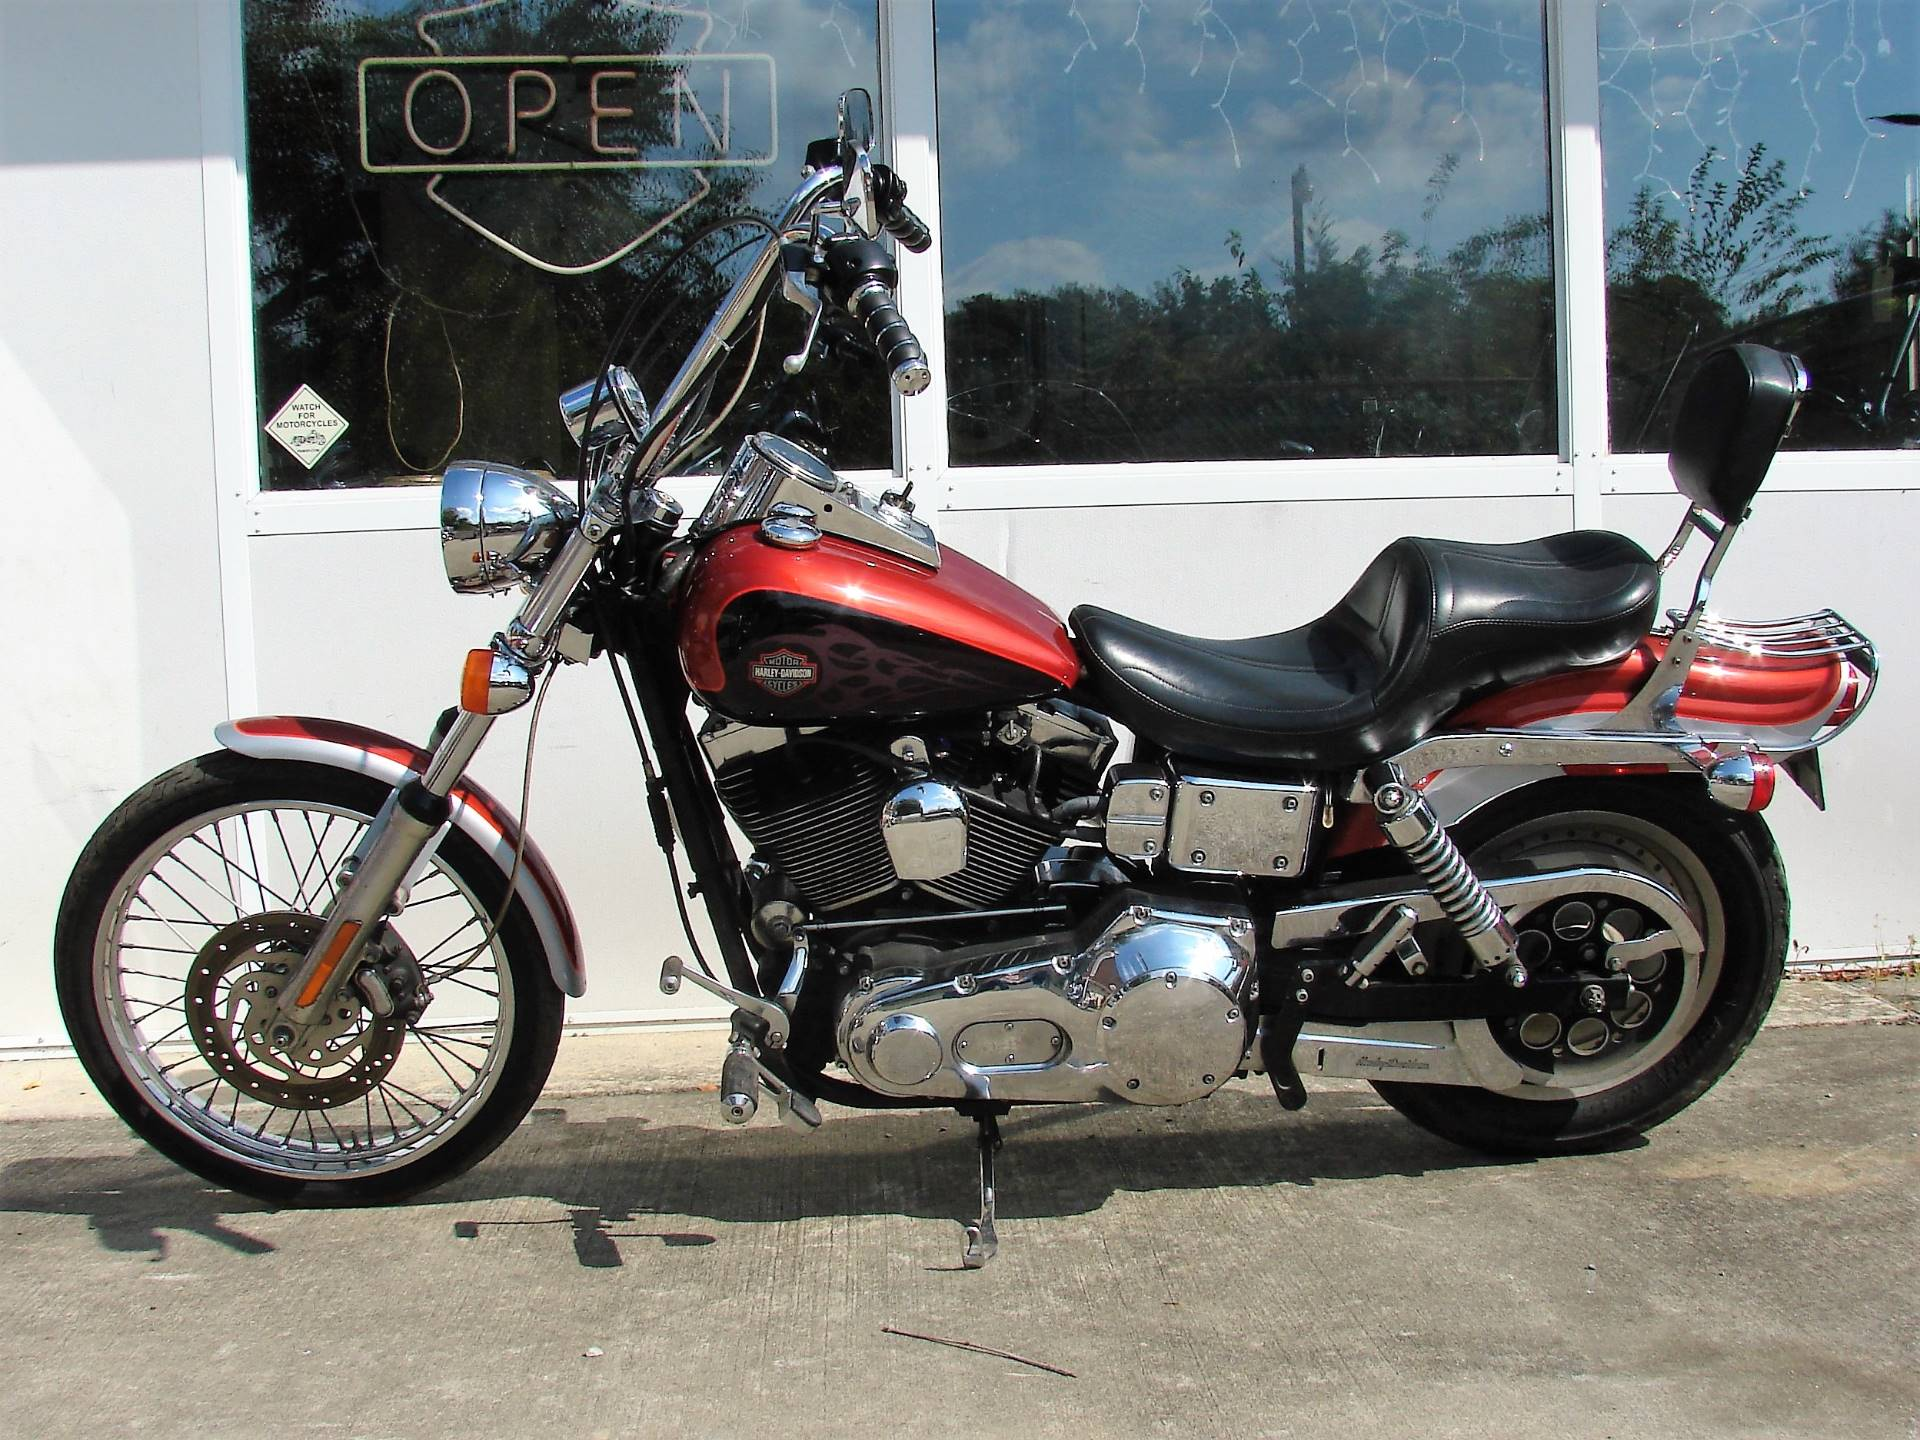 2000 Harley-Davidson FXDWG Dyna Wide Glide in Williamstown, New Jersey - Photo 13